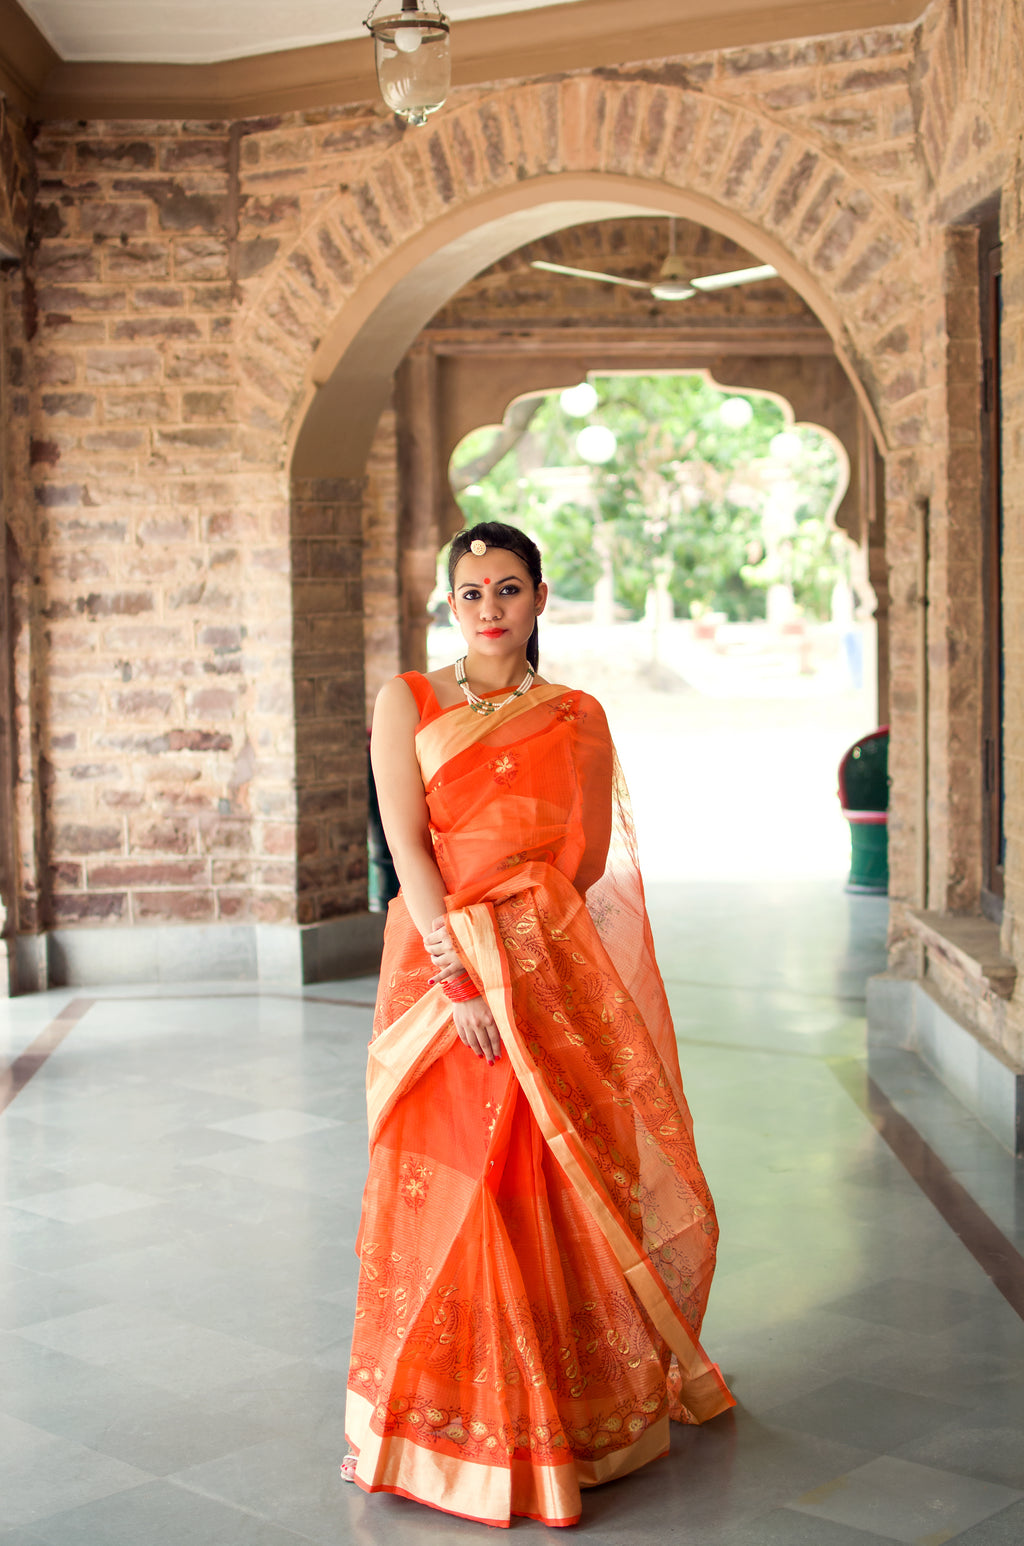 Aachho-Saree-Orange Gold Patti Hand Block Zari Doriya Saree